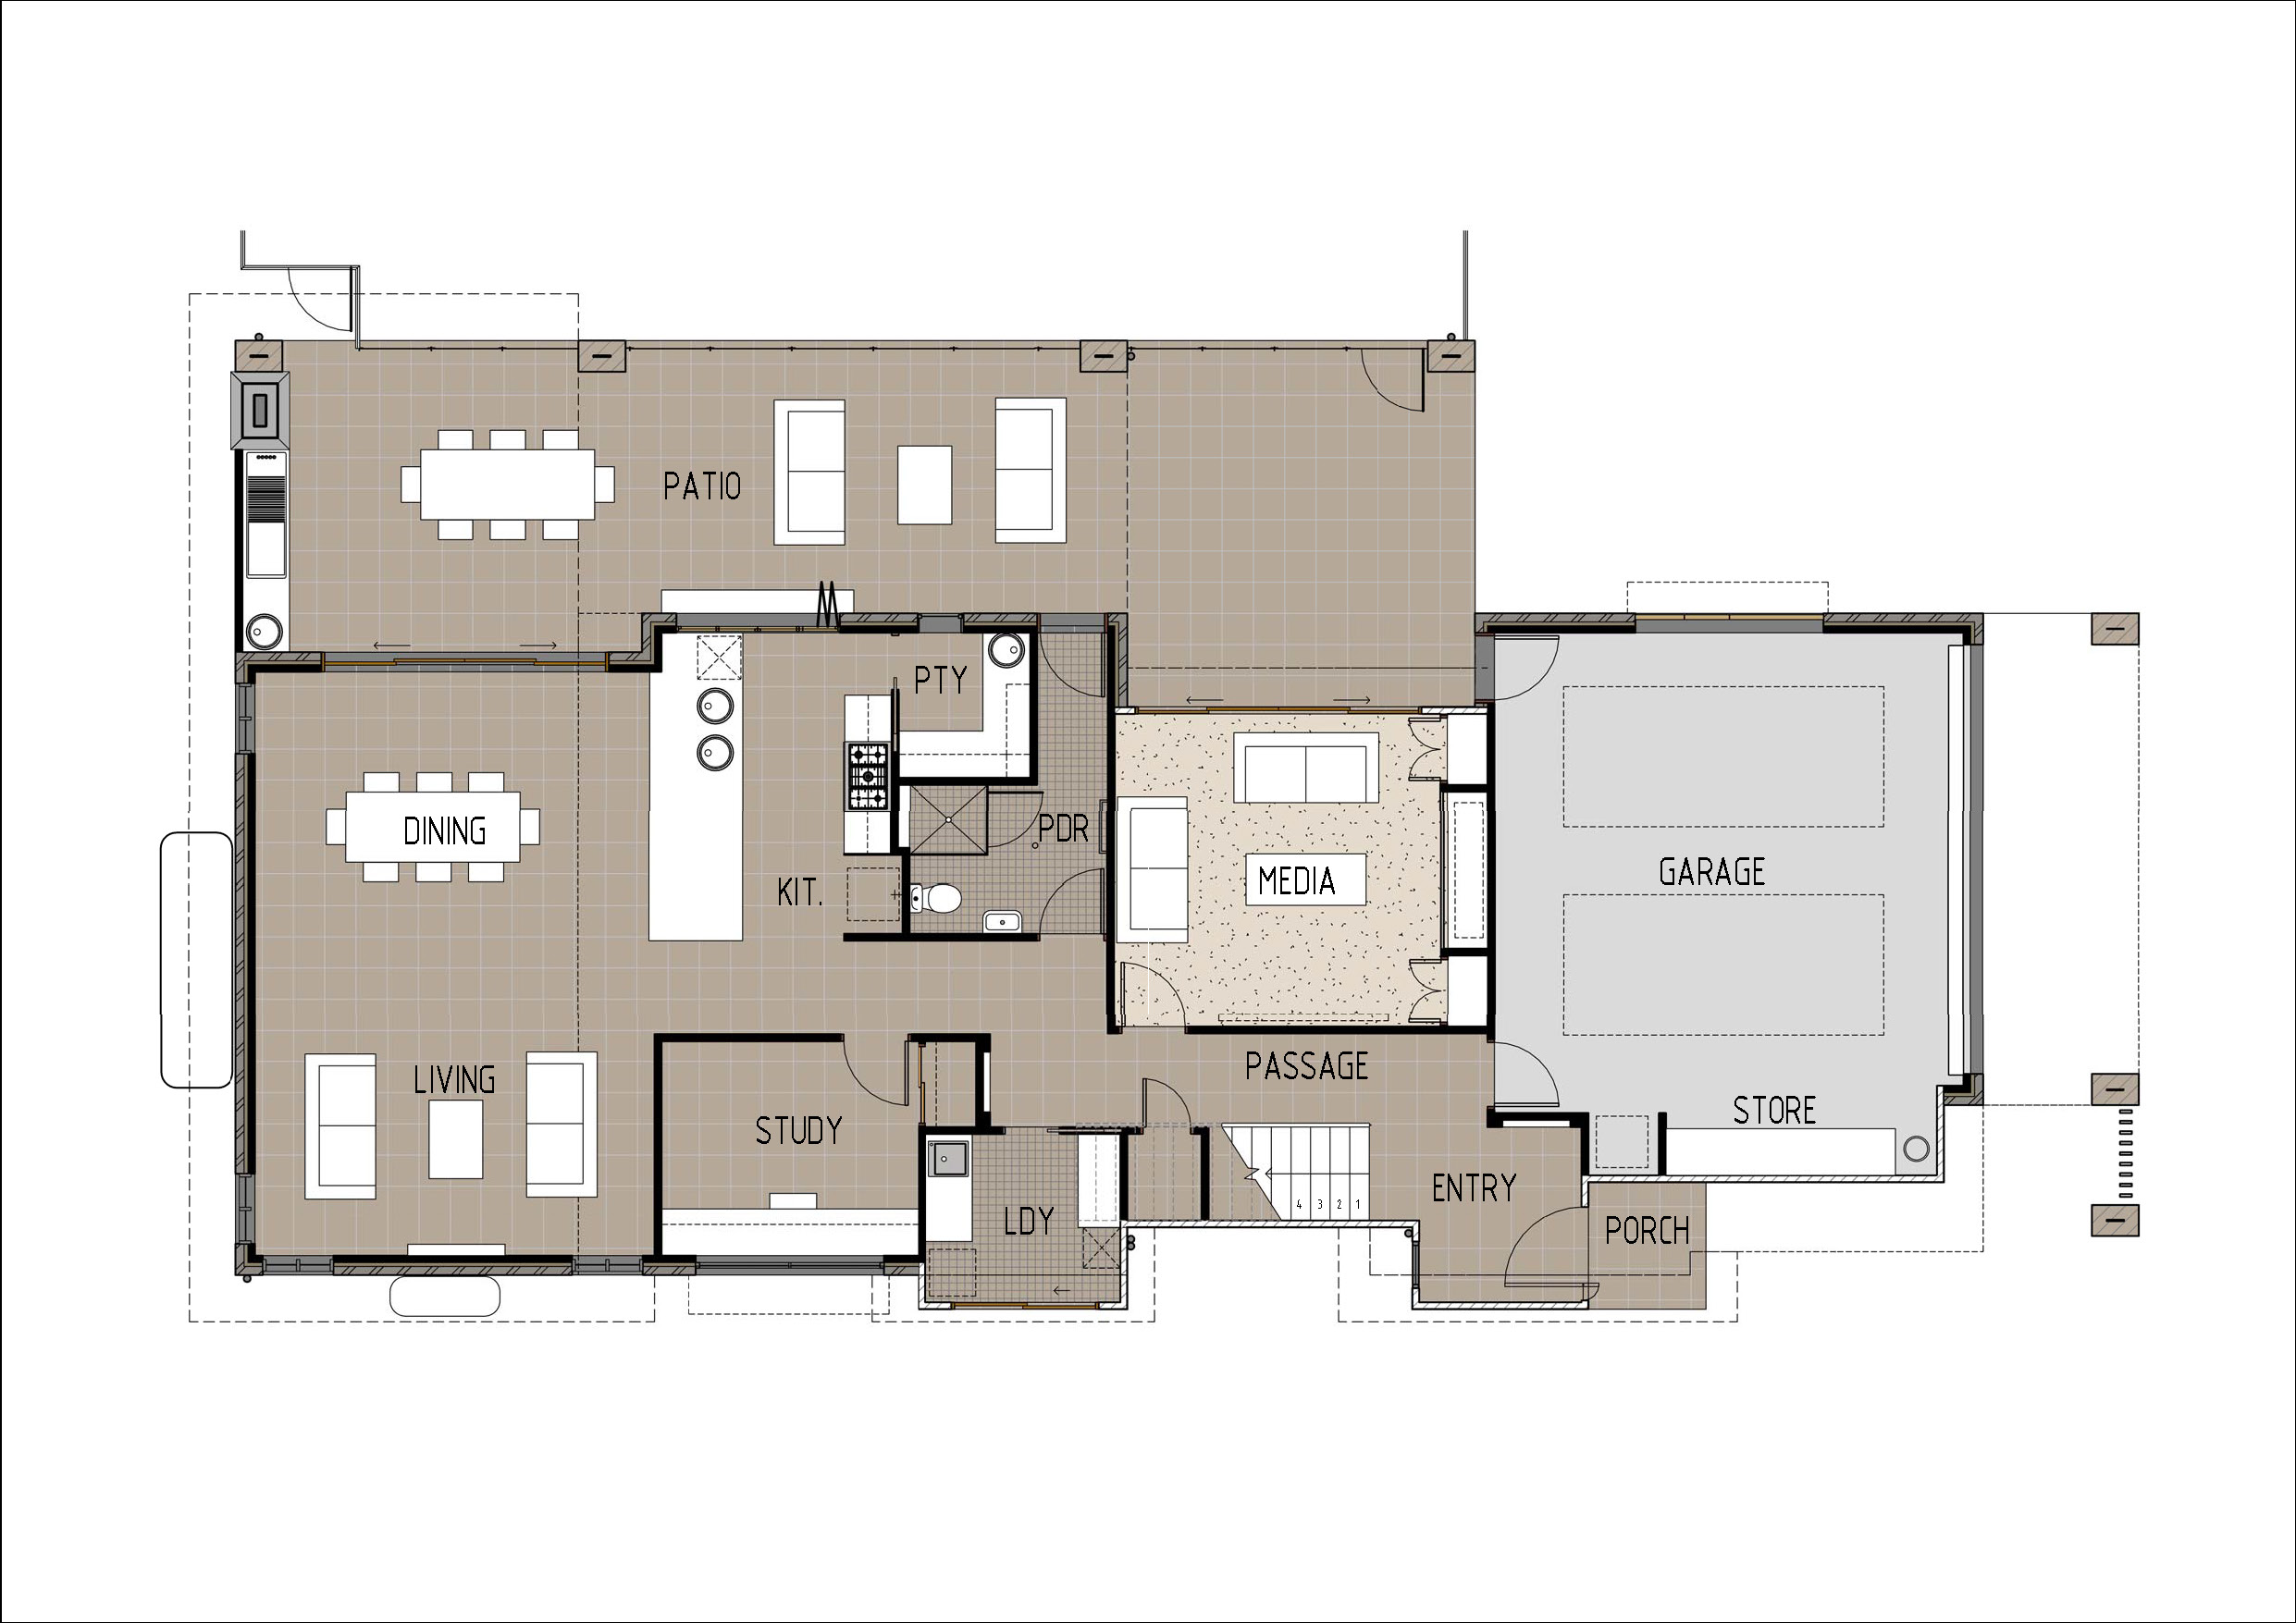 M4003 - GROUND FLOOR PLAN.jpg